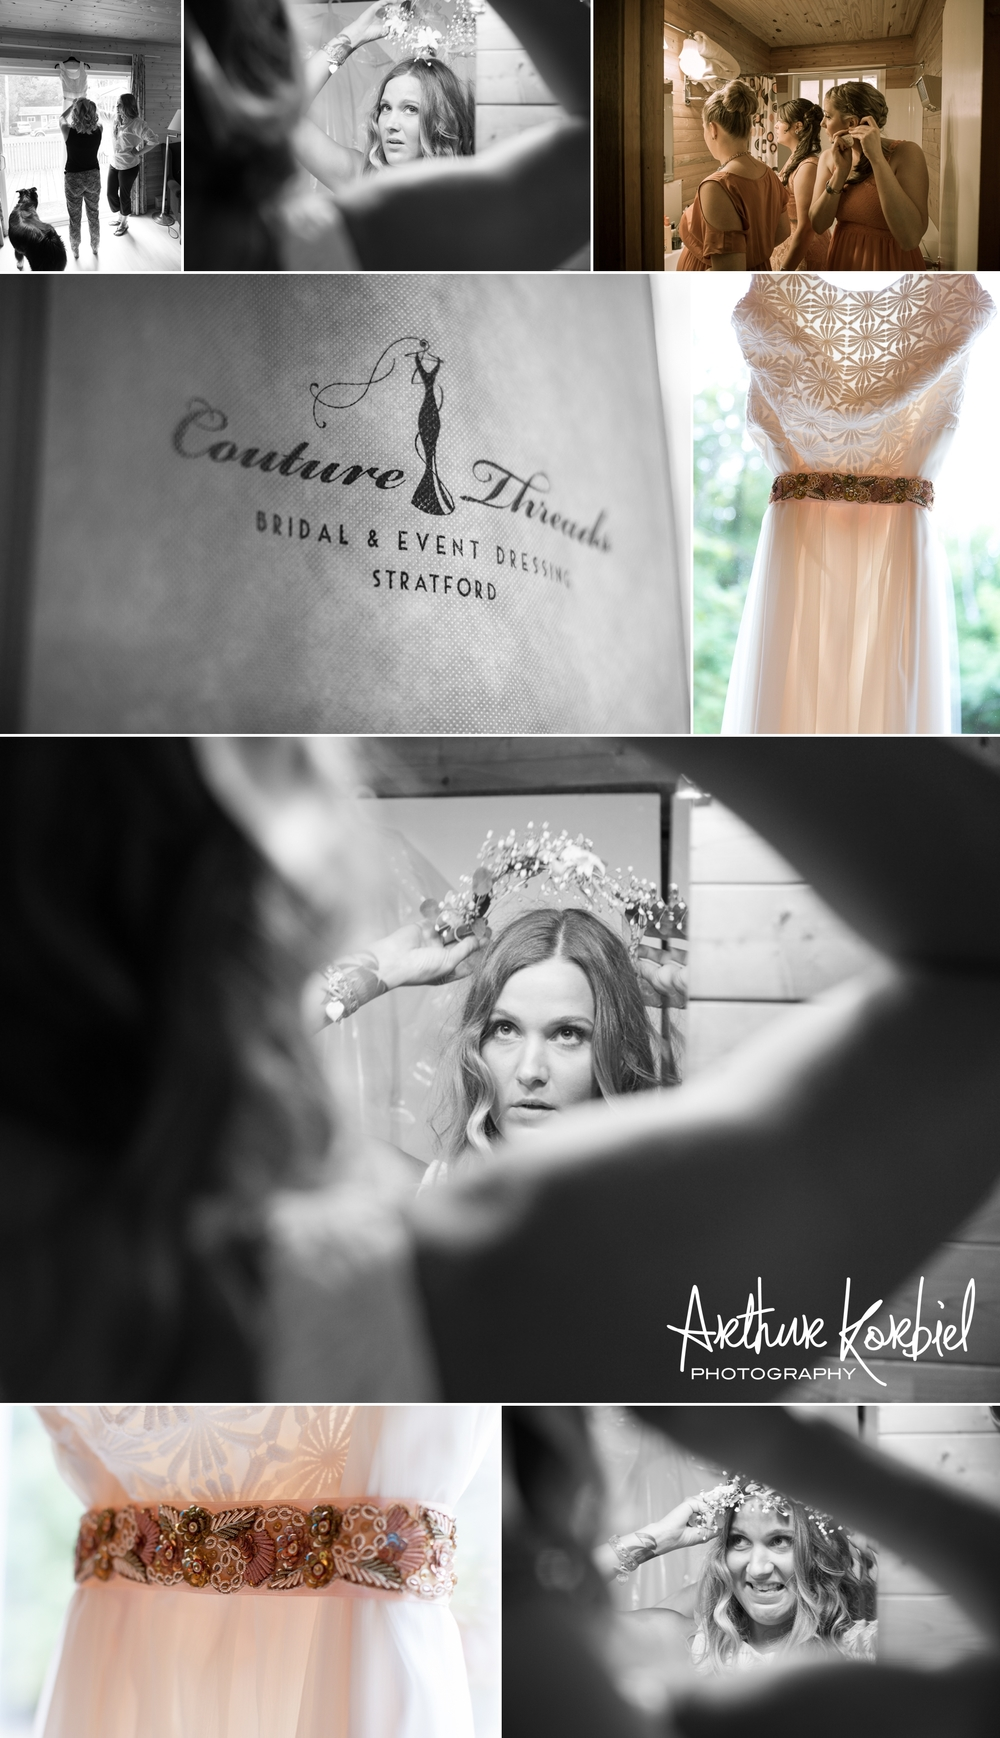 Arthur Korbiel Photography - London Engagement Photographer - Sauble Beach Barn Wedding - Samantha & Dan_004.jpg